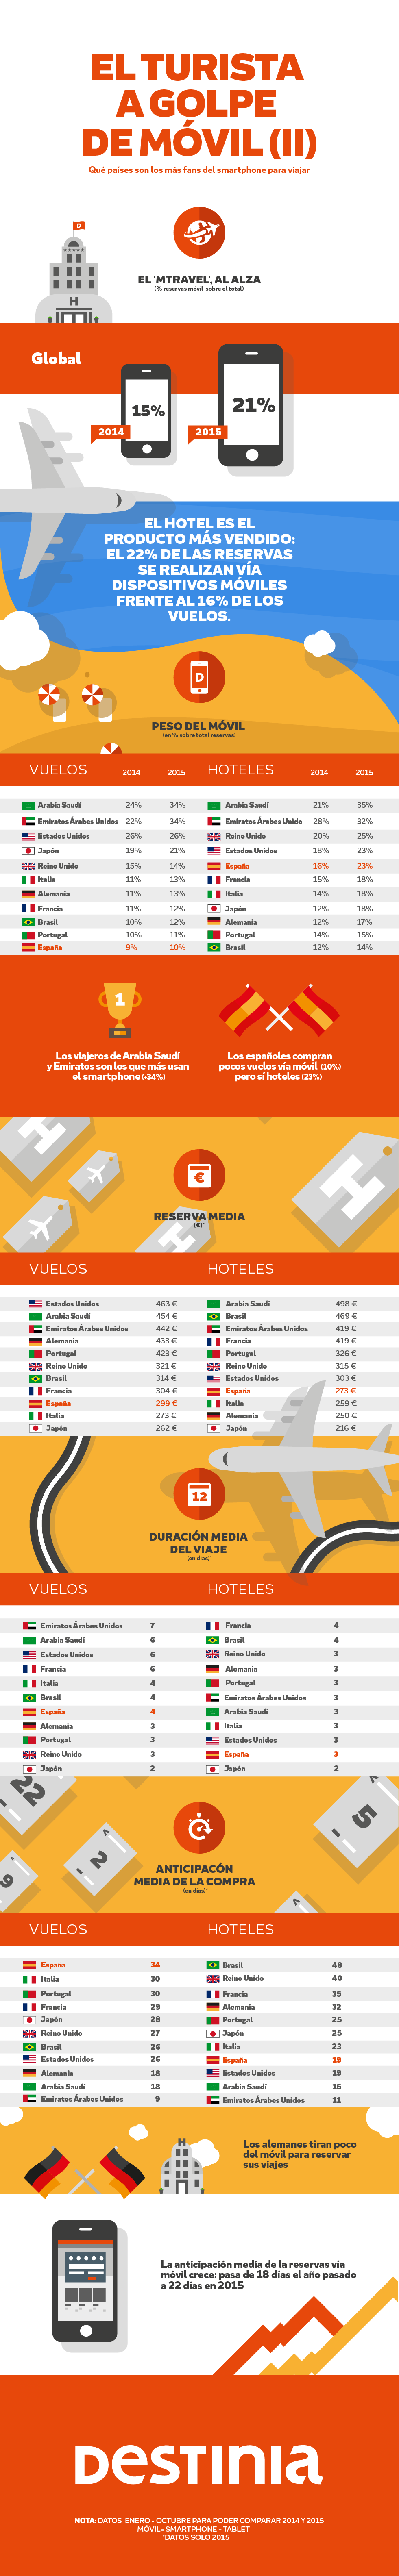 Infografia_turista movil II_Destinia_2015_72-01